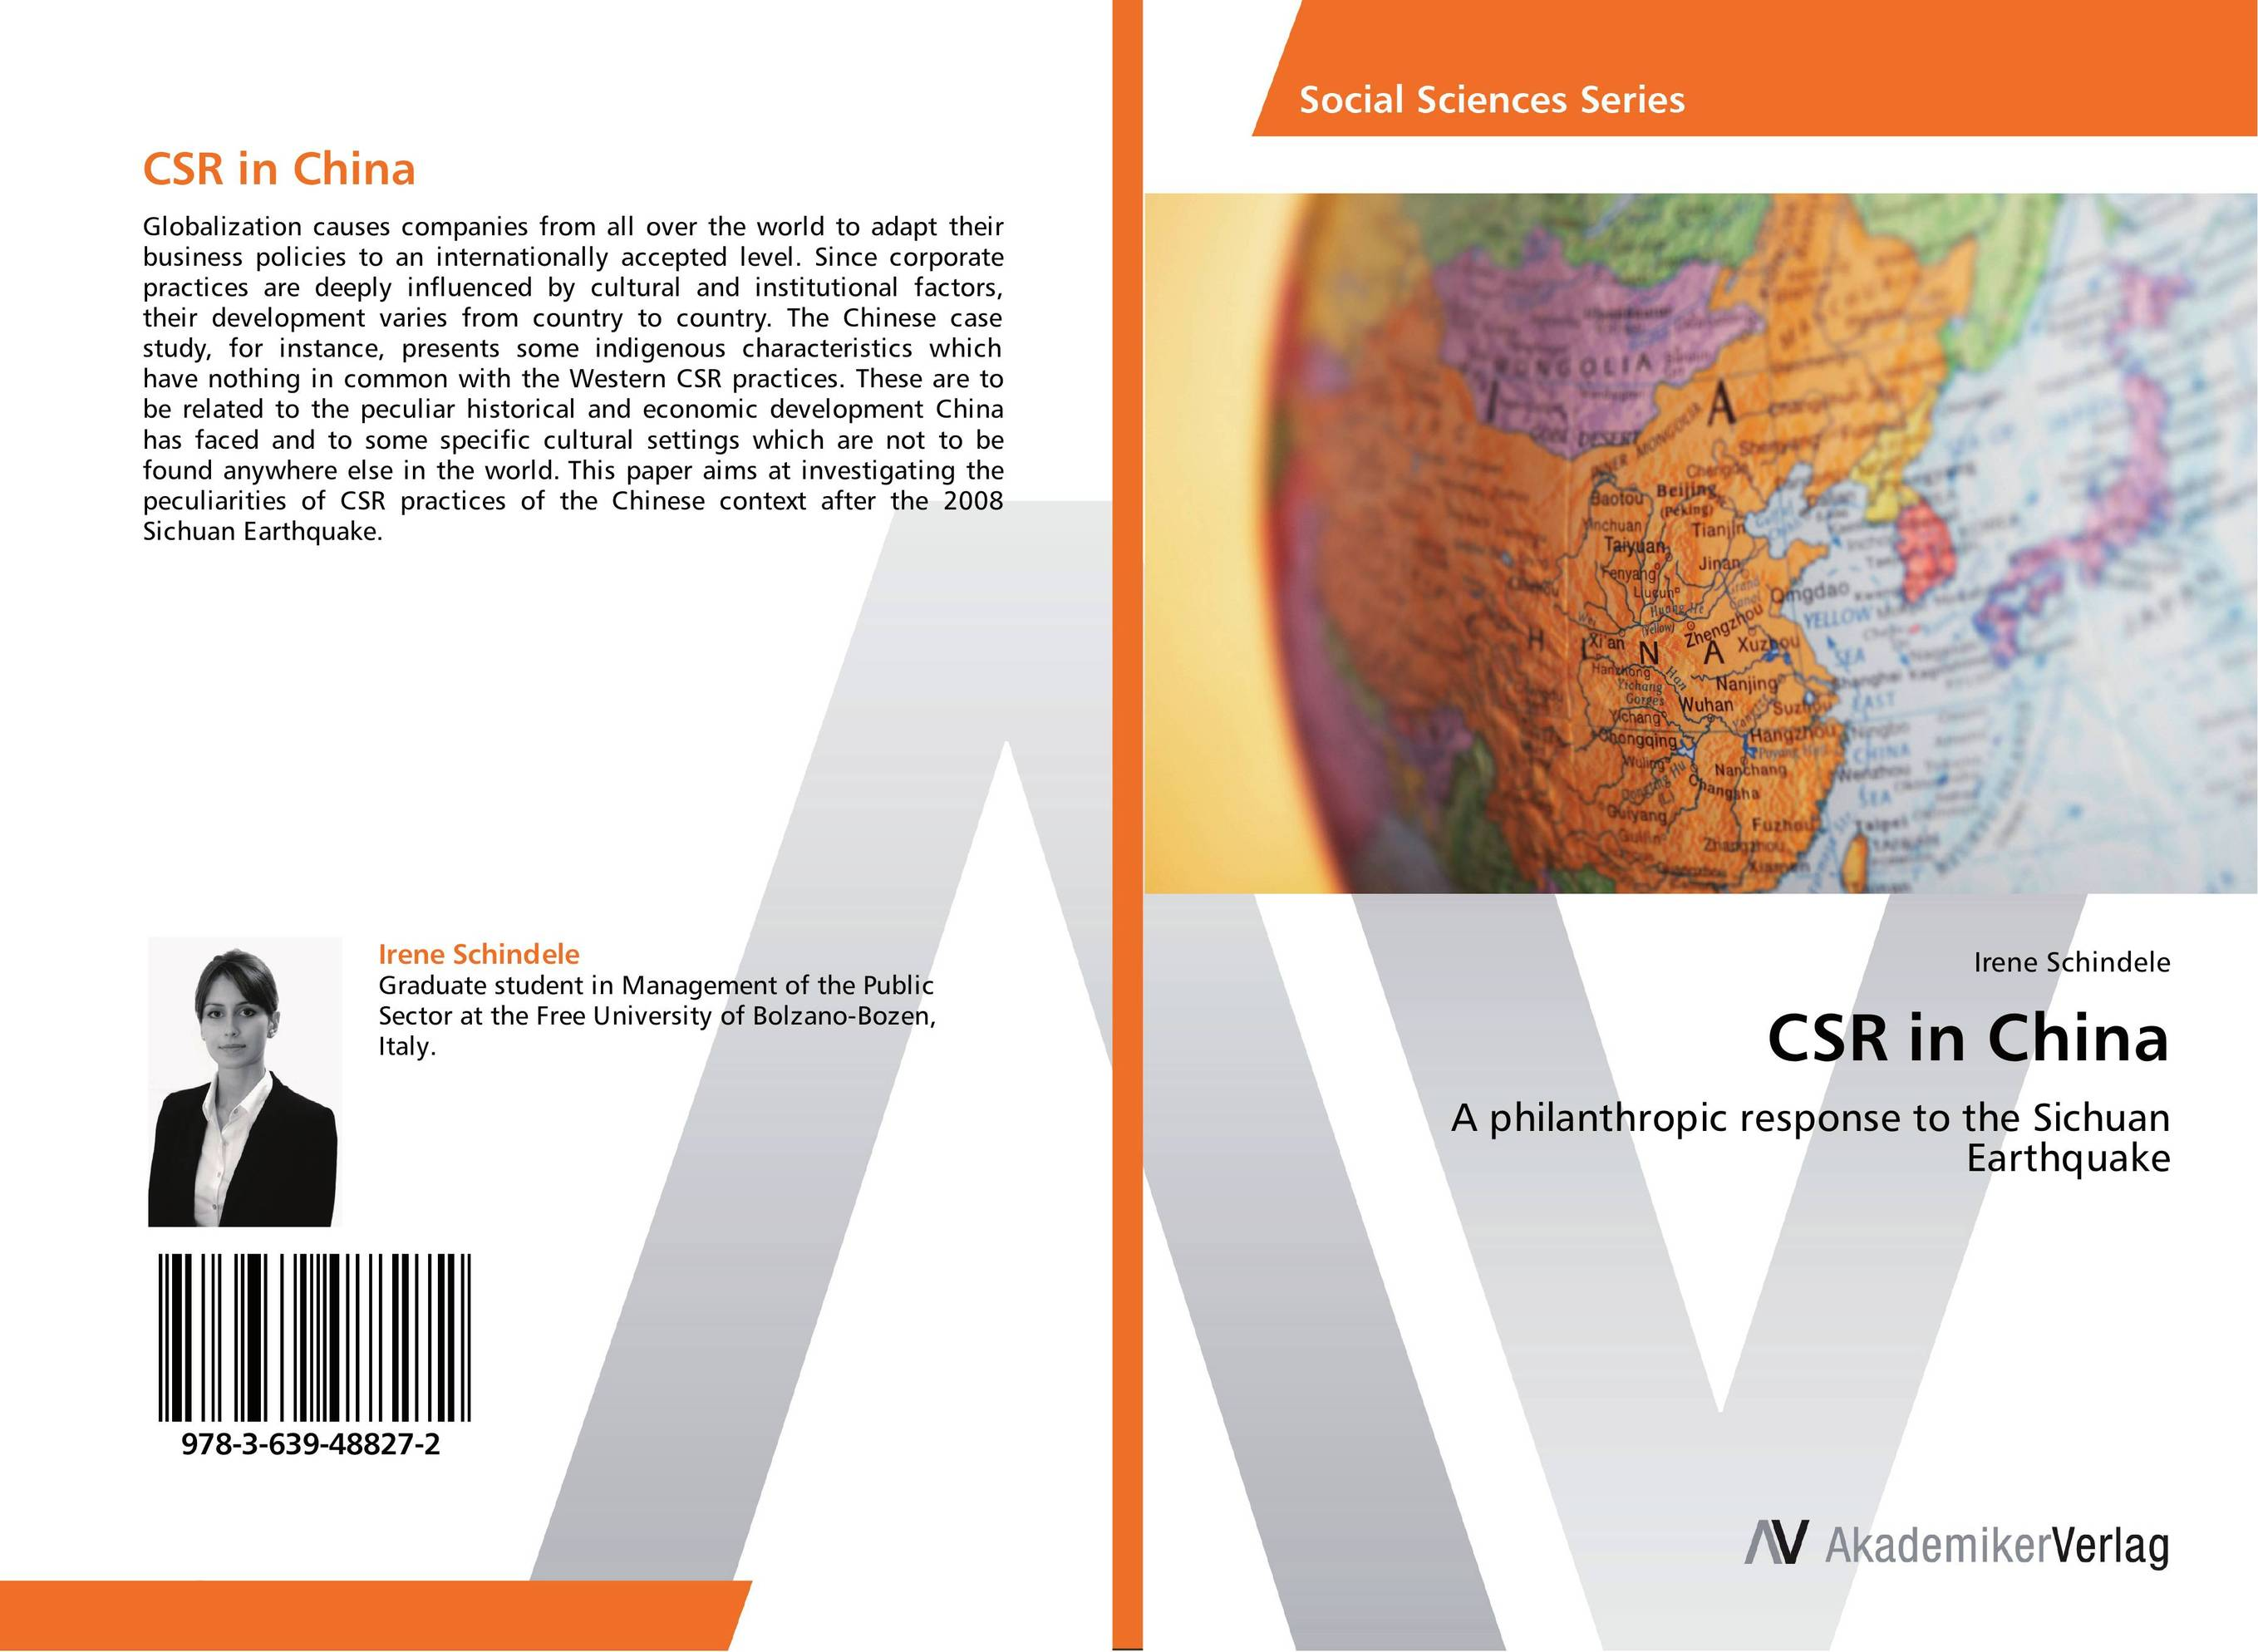 CSR in China choral all state policies and practices